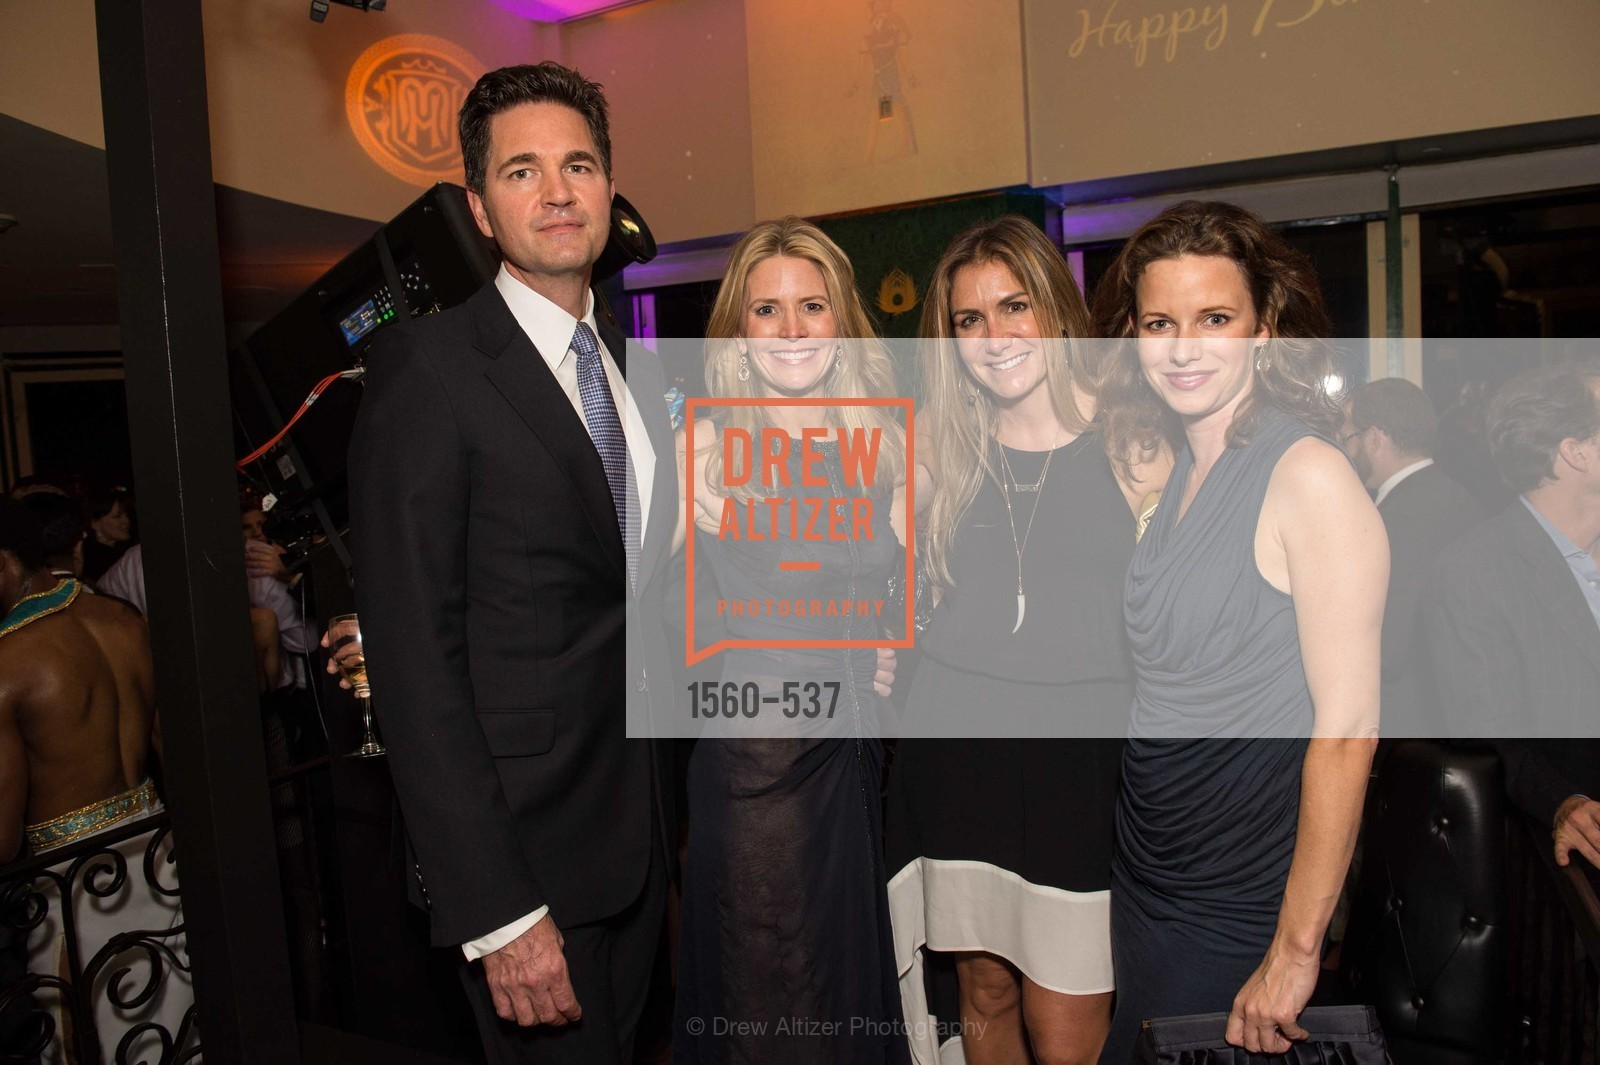 Alex Chases, Ann Millham-Miller, Marissa Rosen, Lindsay Bolton, TOP OF THE MARK'S 75TH Anniversary Party, US, November 7th, 2014,Drew Altizer, Drew Altizer Photography, full-service agency, private events, San Francisco photographer, photographer california